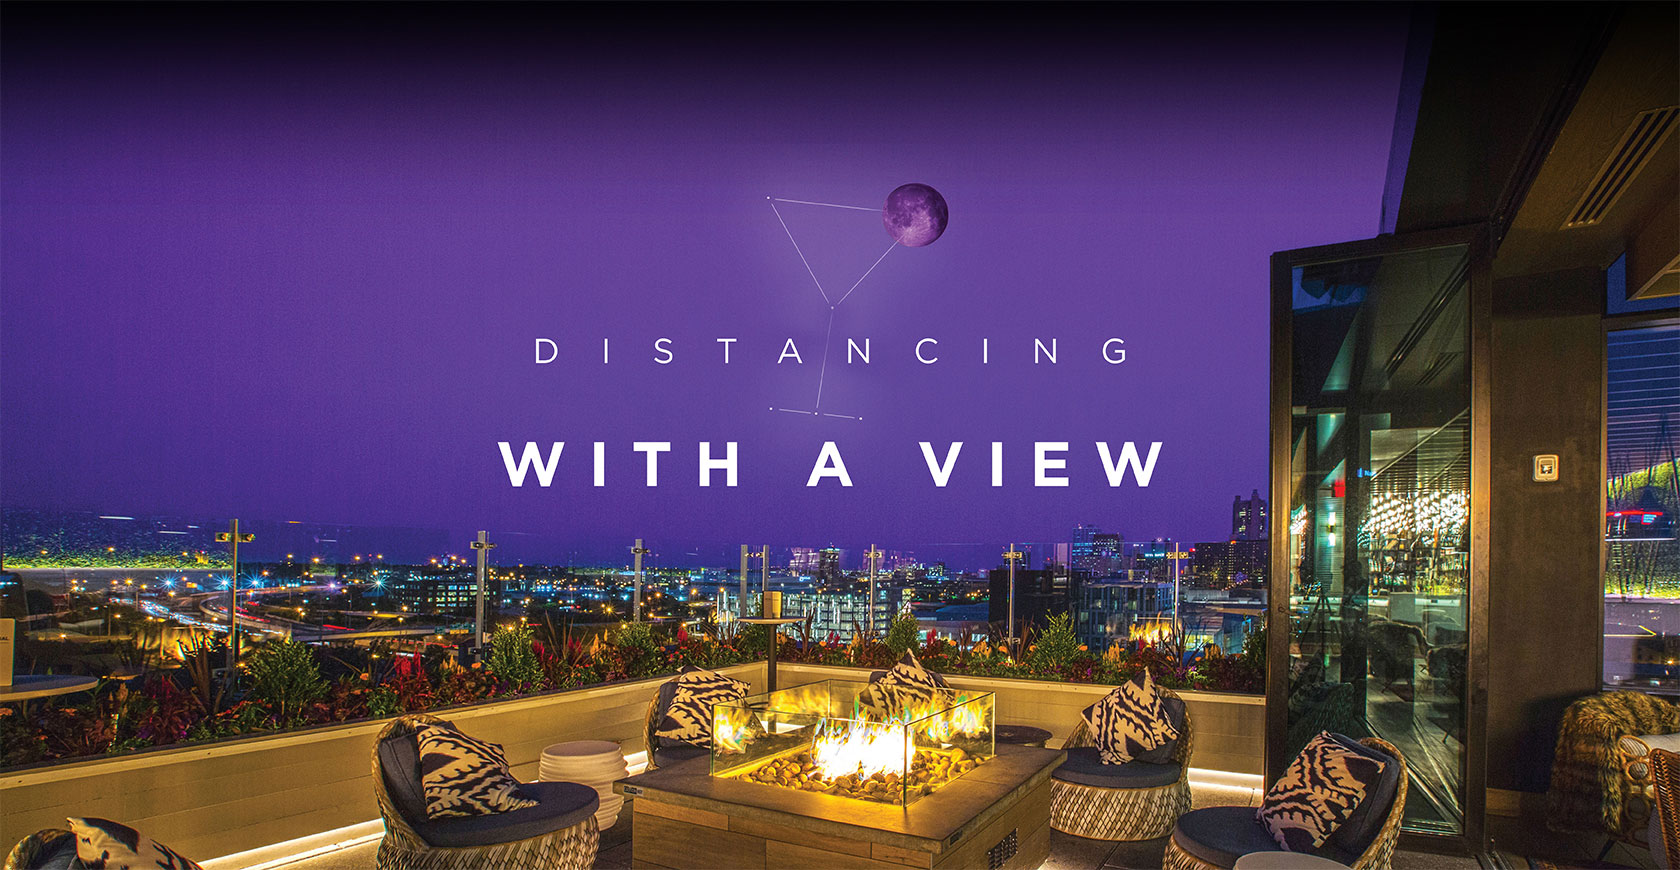 Distancing with a View